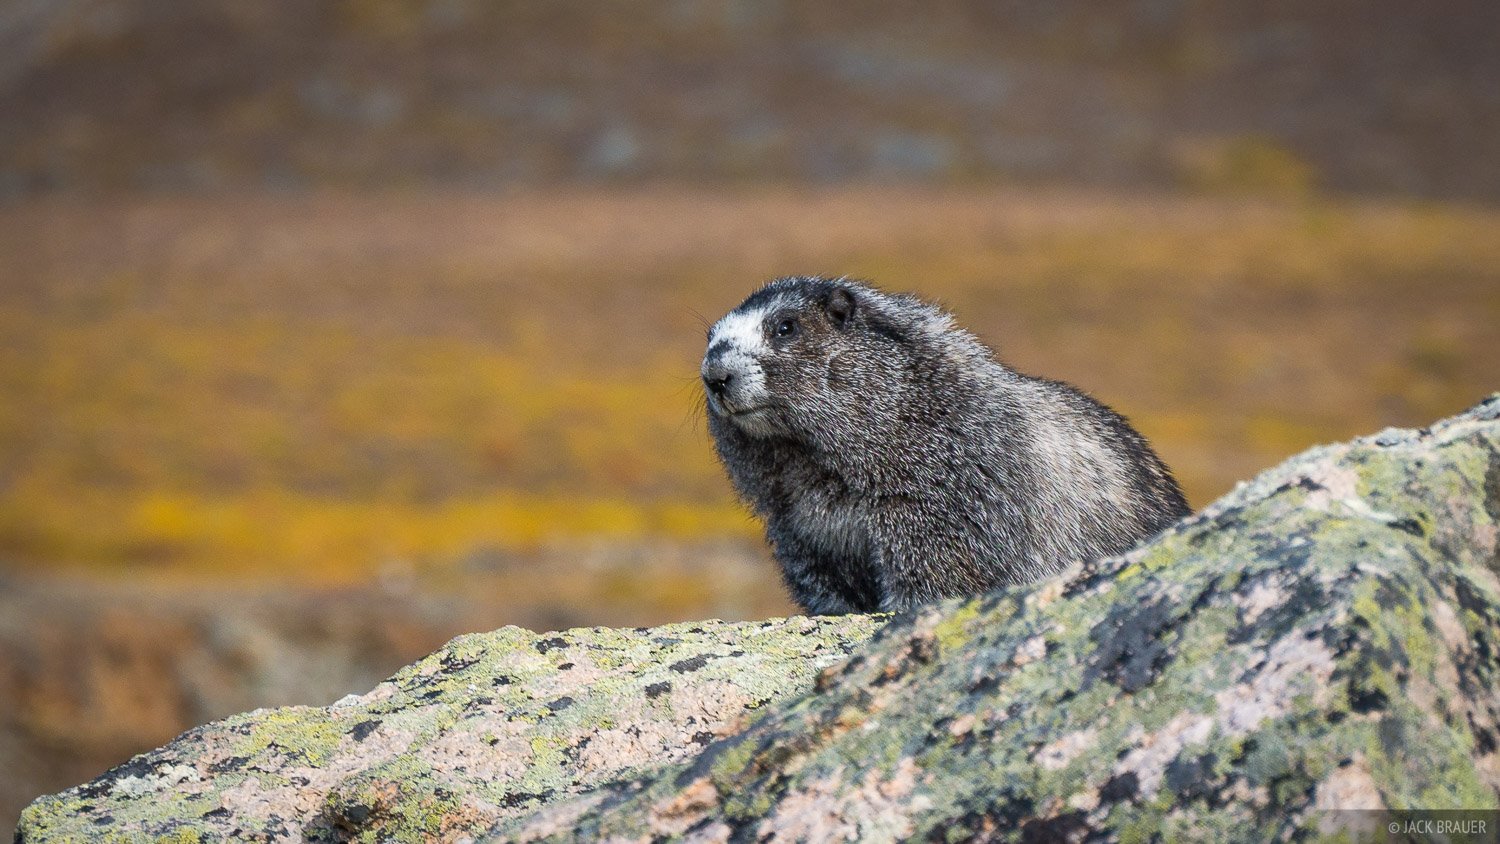 Local resident marmot of Tombstone Pass. We never did see any grizzlies on this trek, just marmots! That's ok with me.